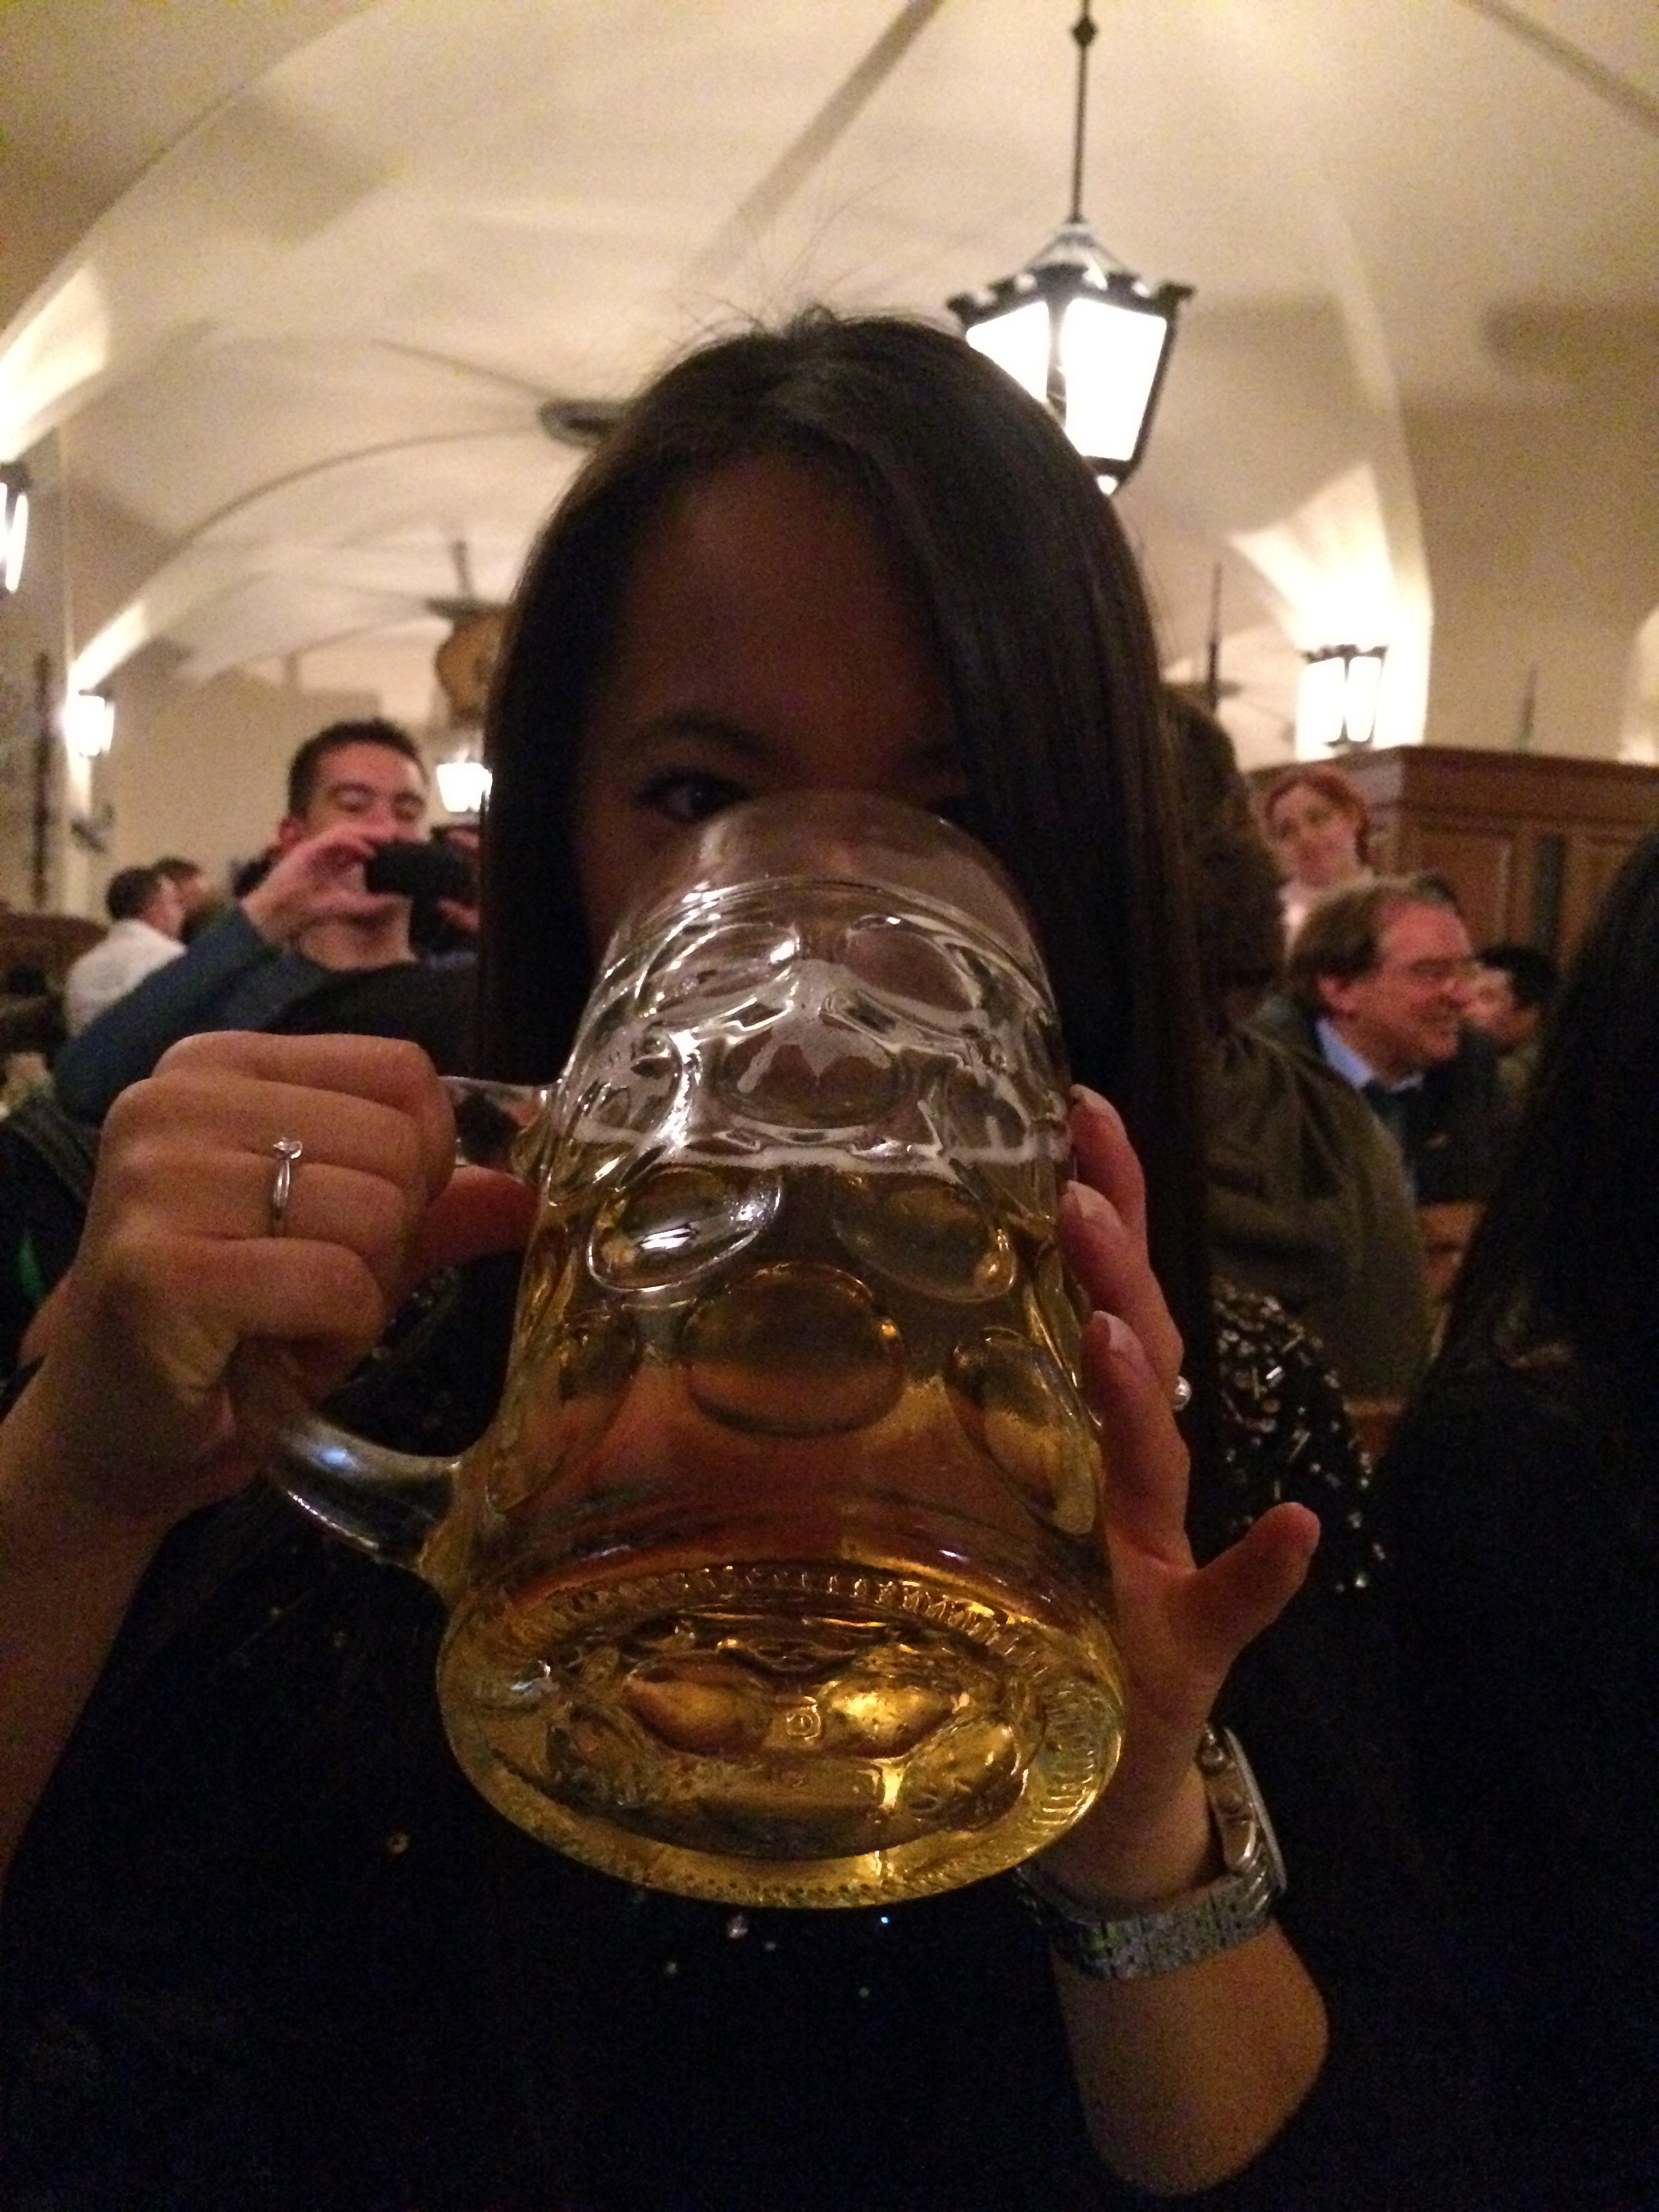 With my Stein in the Hofbräuhaus